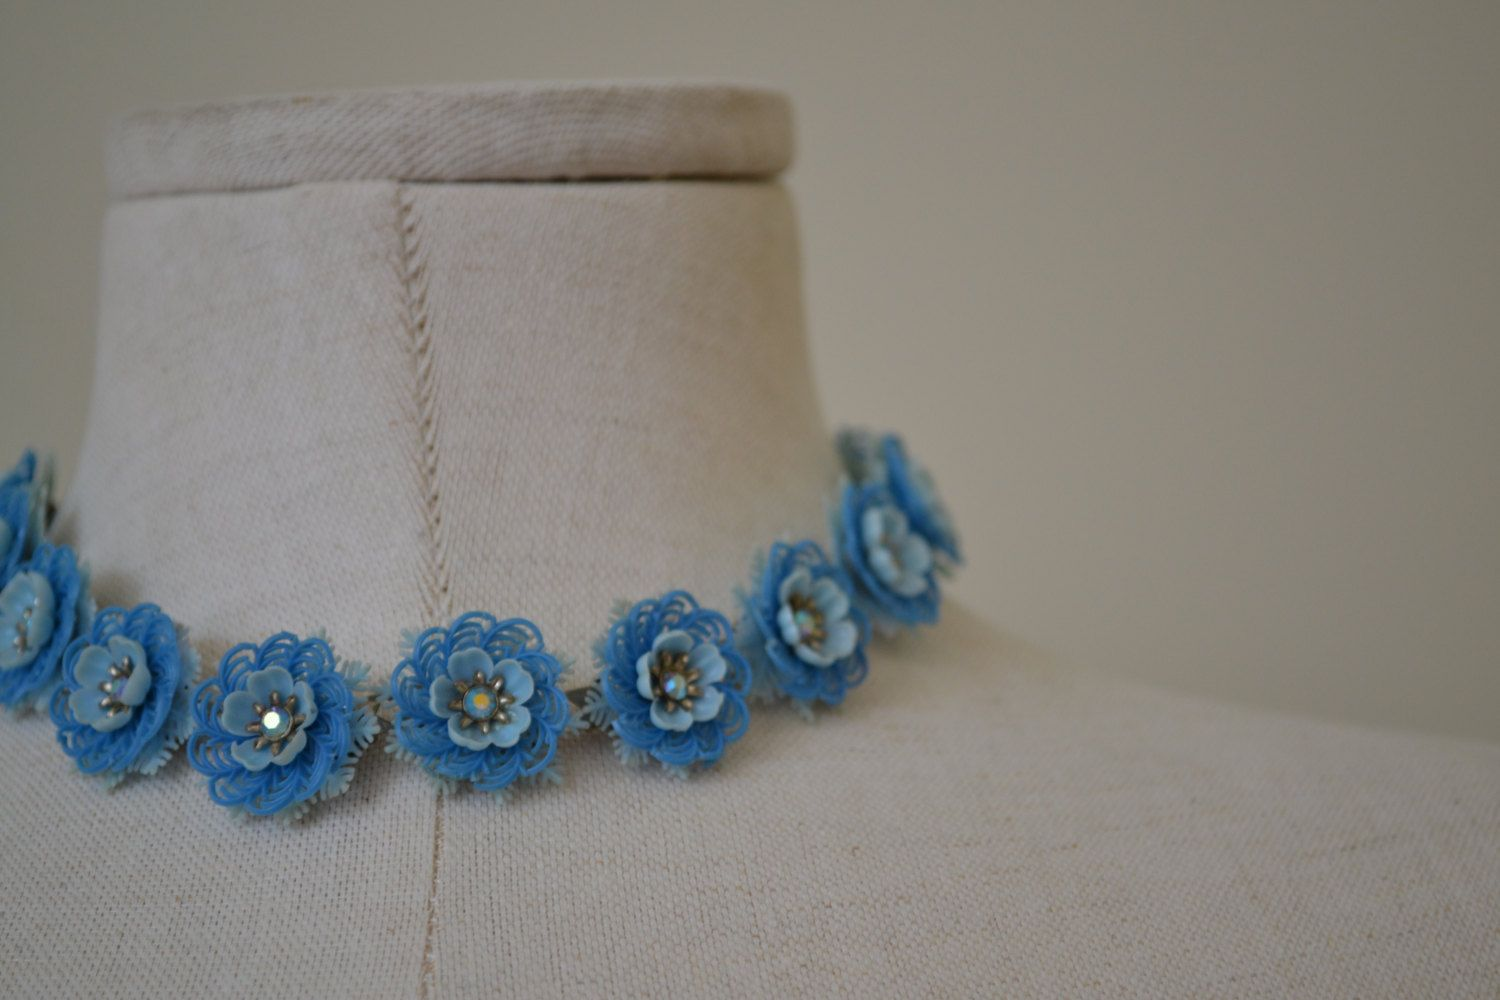 """1950's two tone blue plastic flower choker with irridescent rhinestone center 16.5"""" maximum -prom or summer beach necklace by LulaVintageMN on Etsy"""